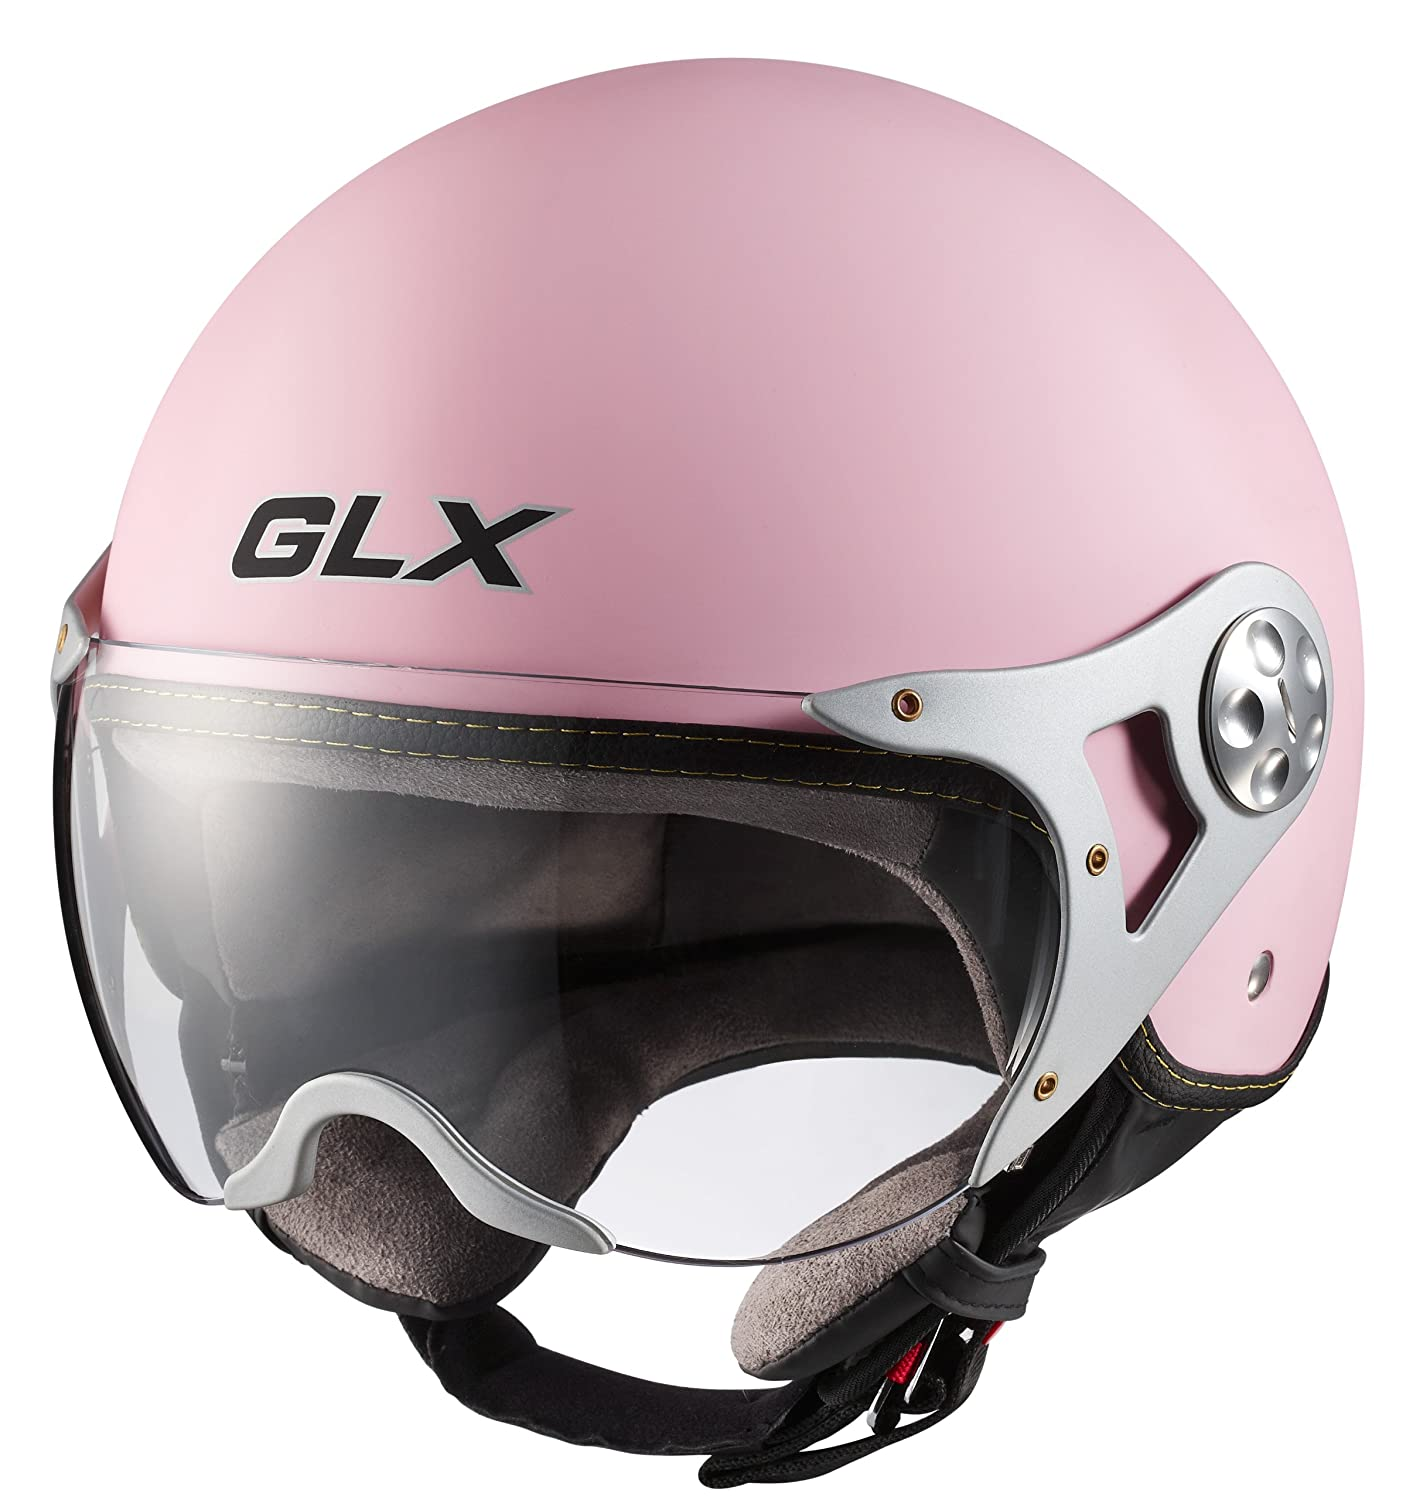 Glx copter style best motorcycle helmets reviews for Best helmet for motor scooter